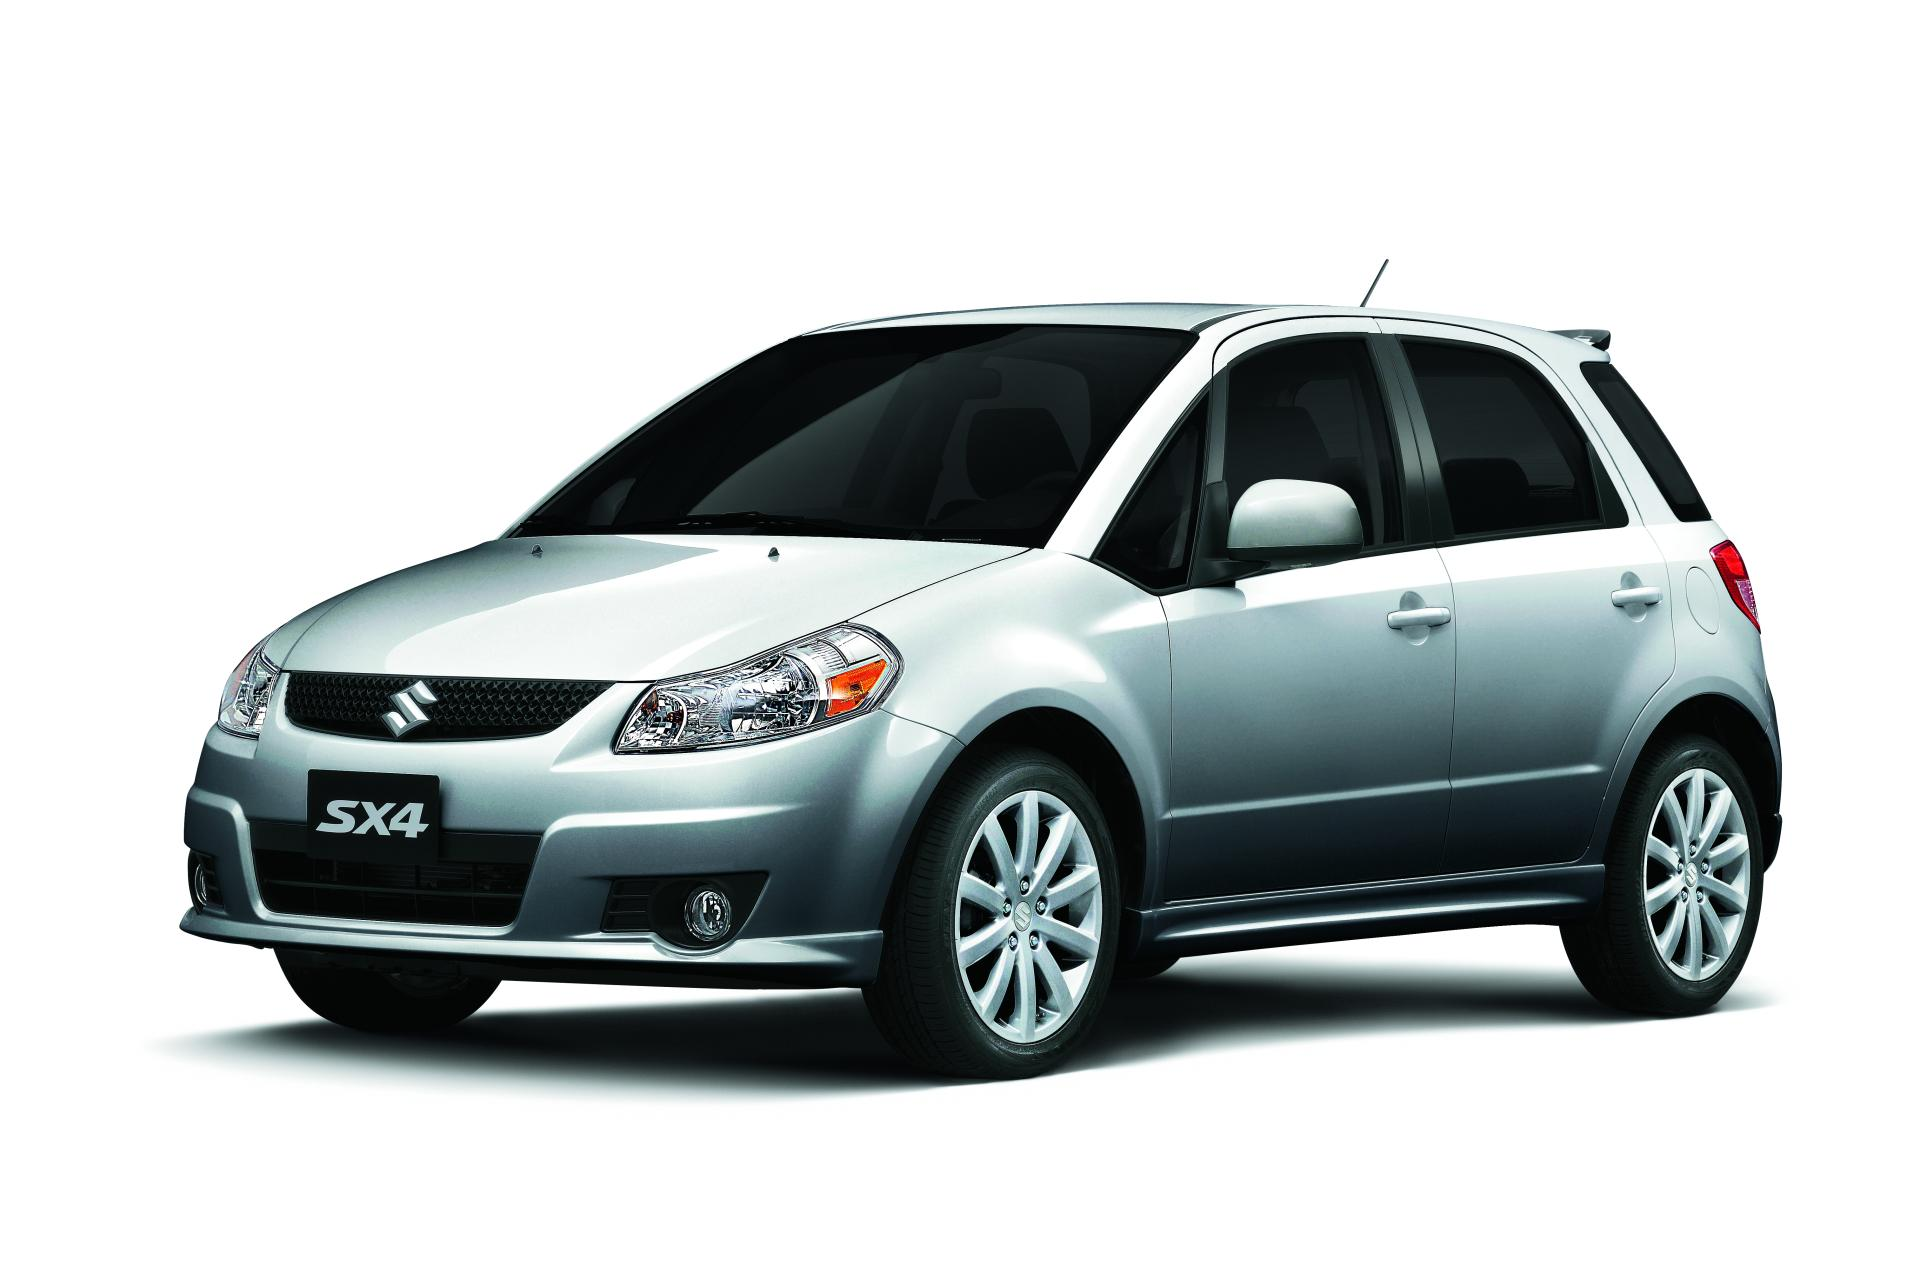 2012 suzuki sx4 photos informations articles. Black Bedroom Furniture Sets. Home Design Ideas